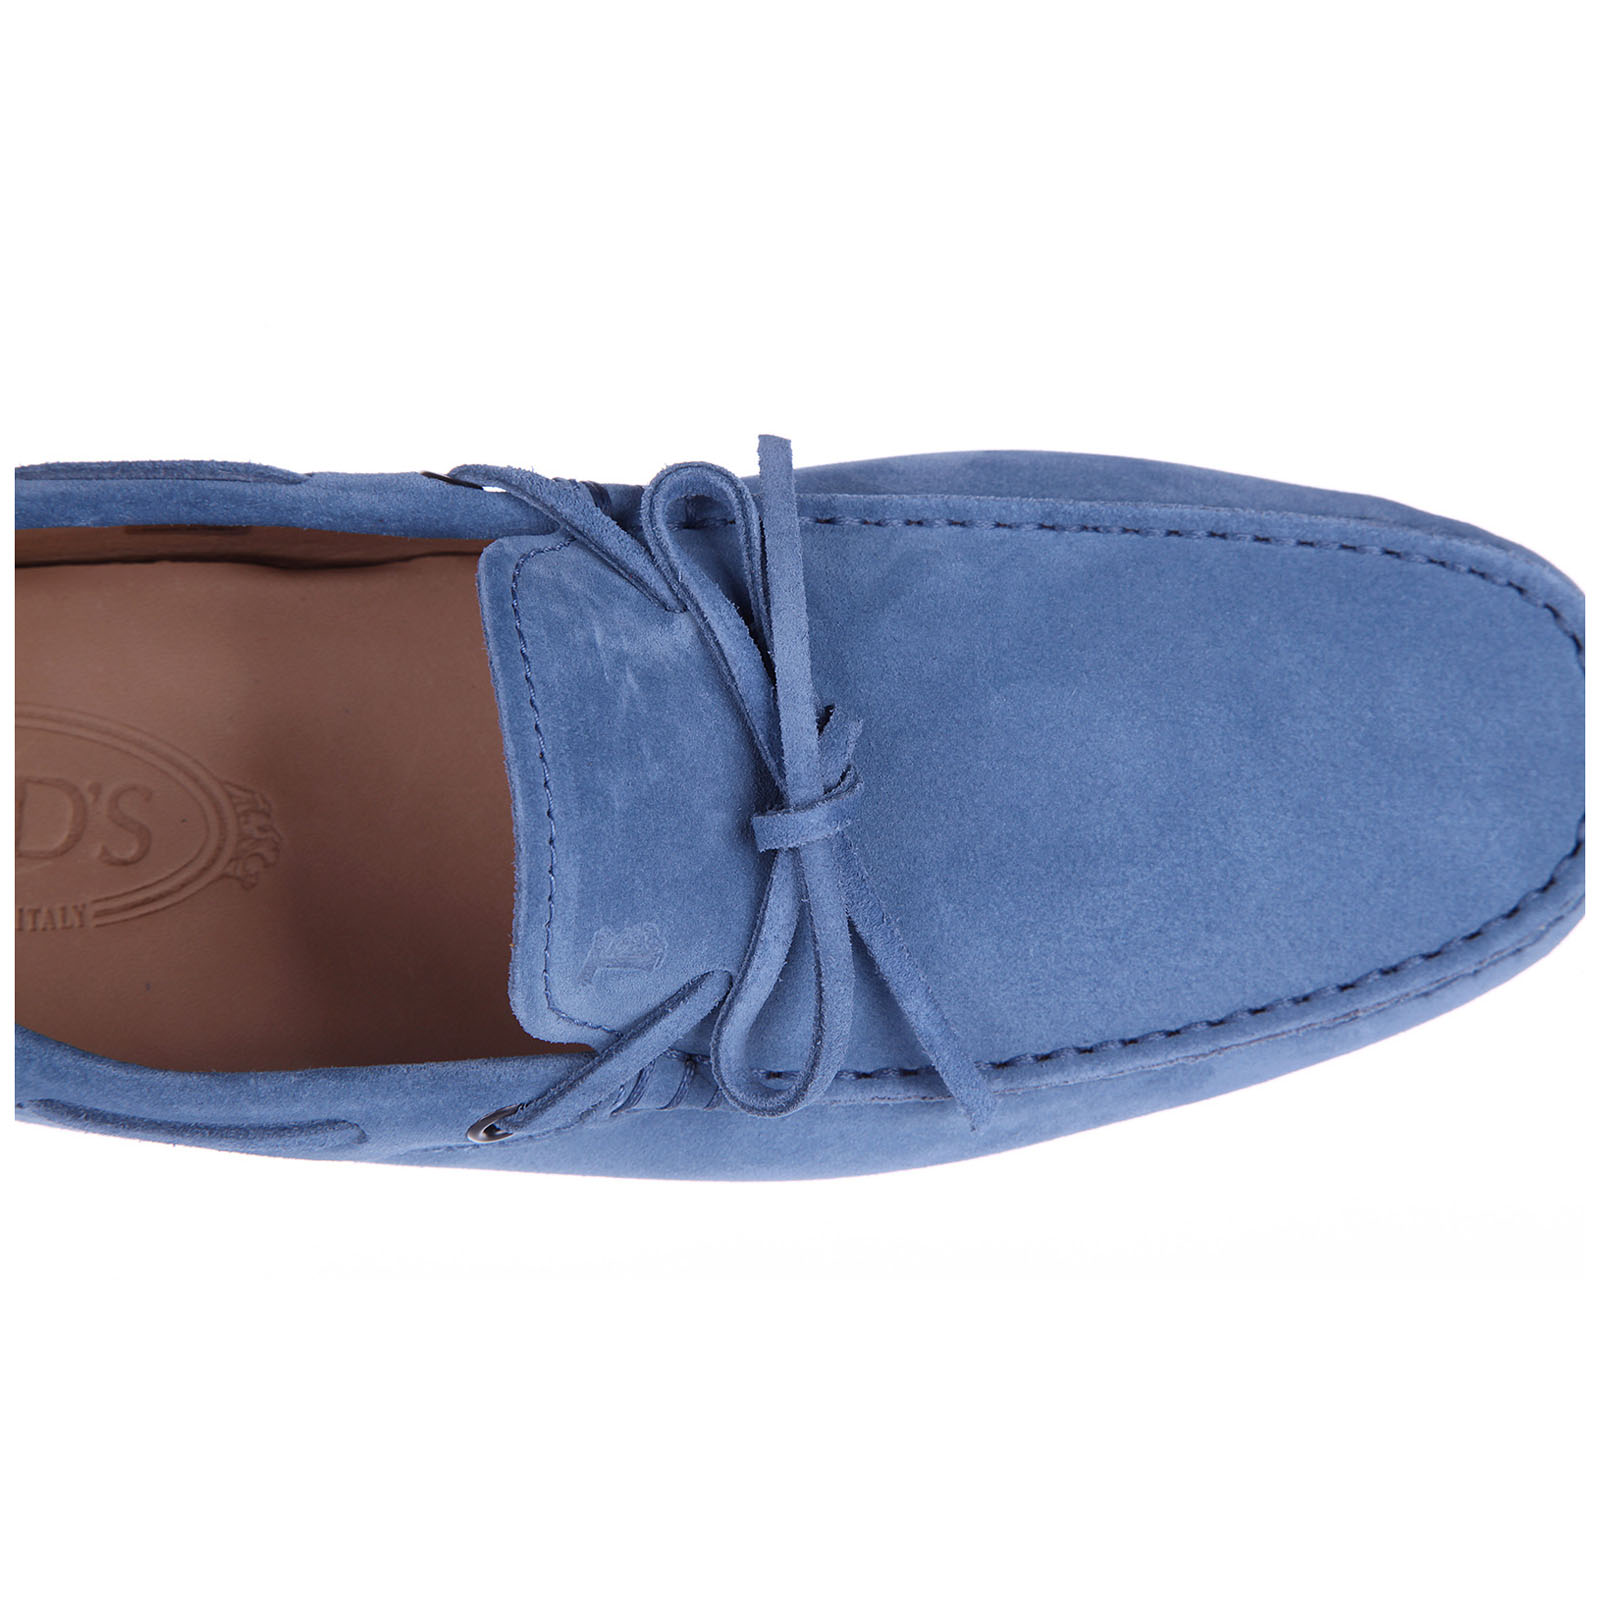 Wildleder mokassins herren slipper laccetto gommini 122